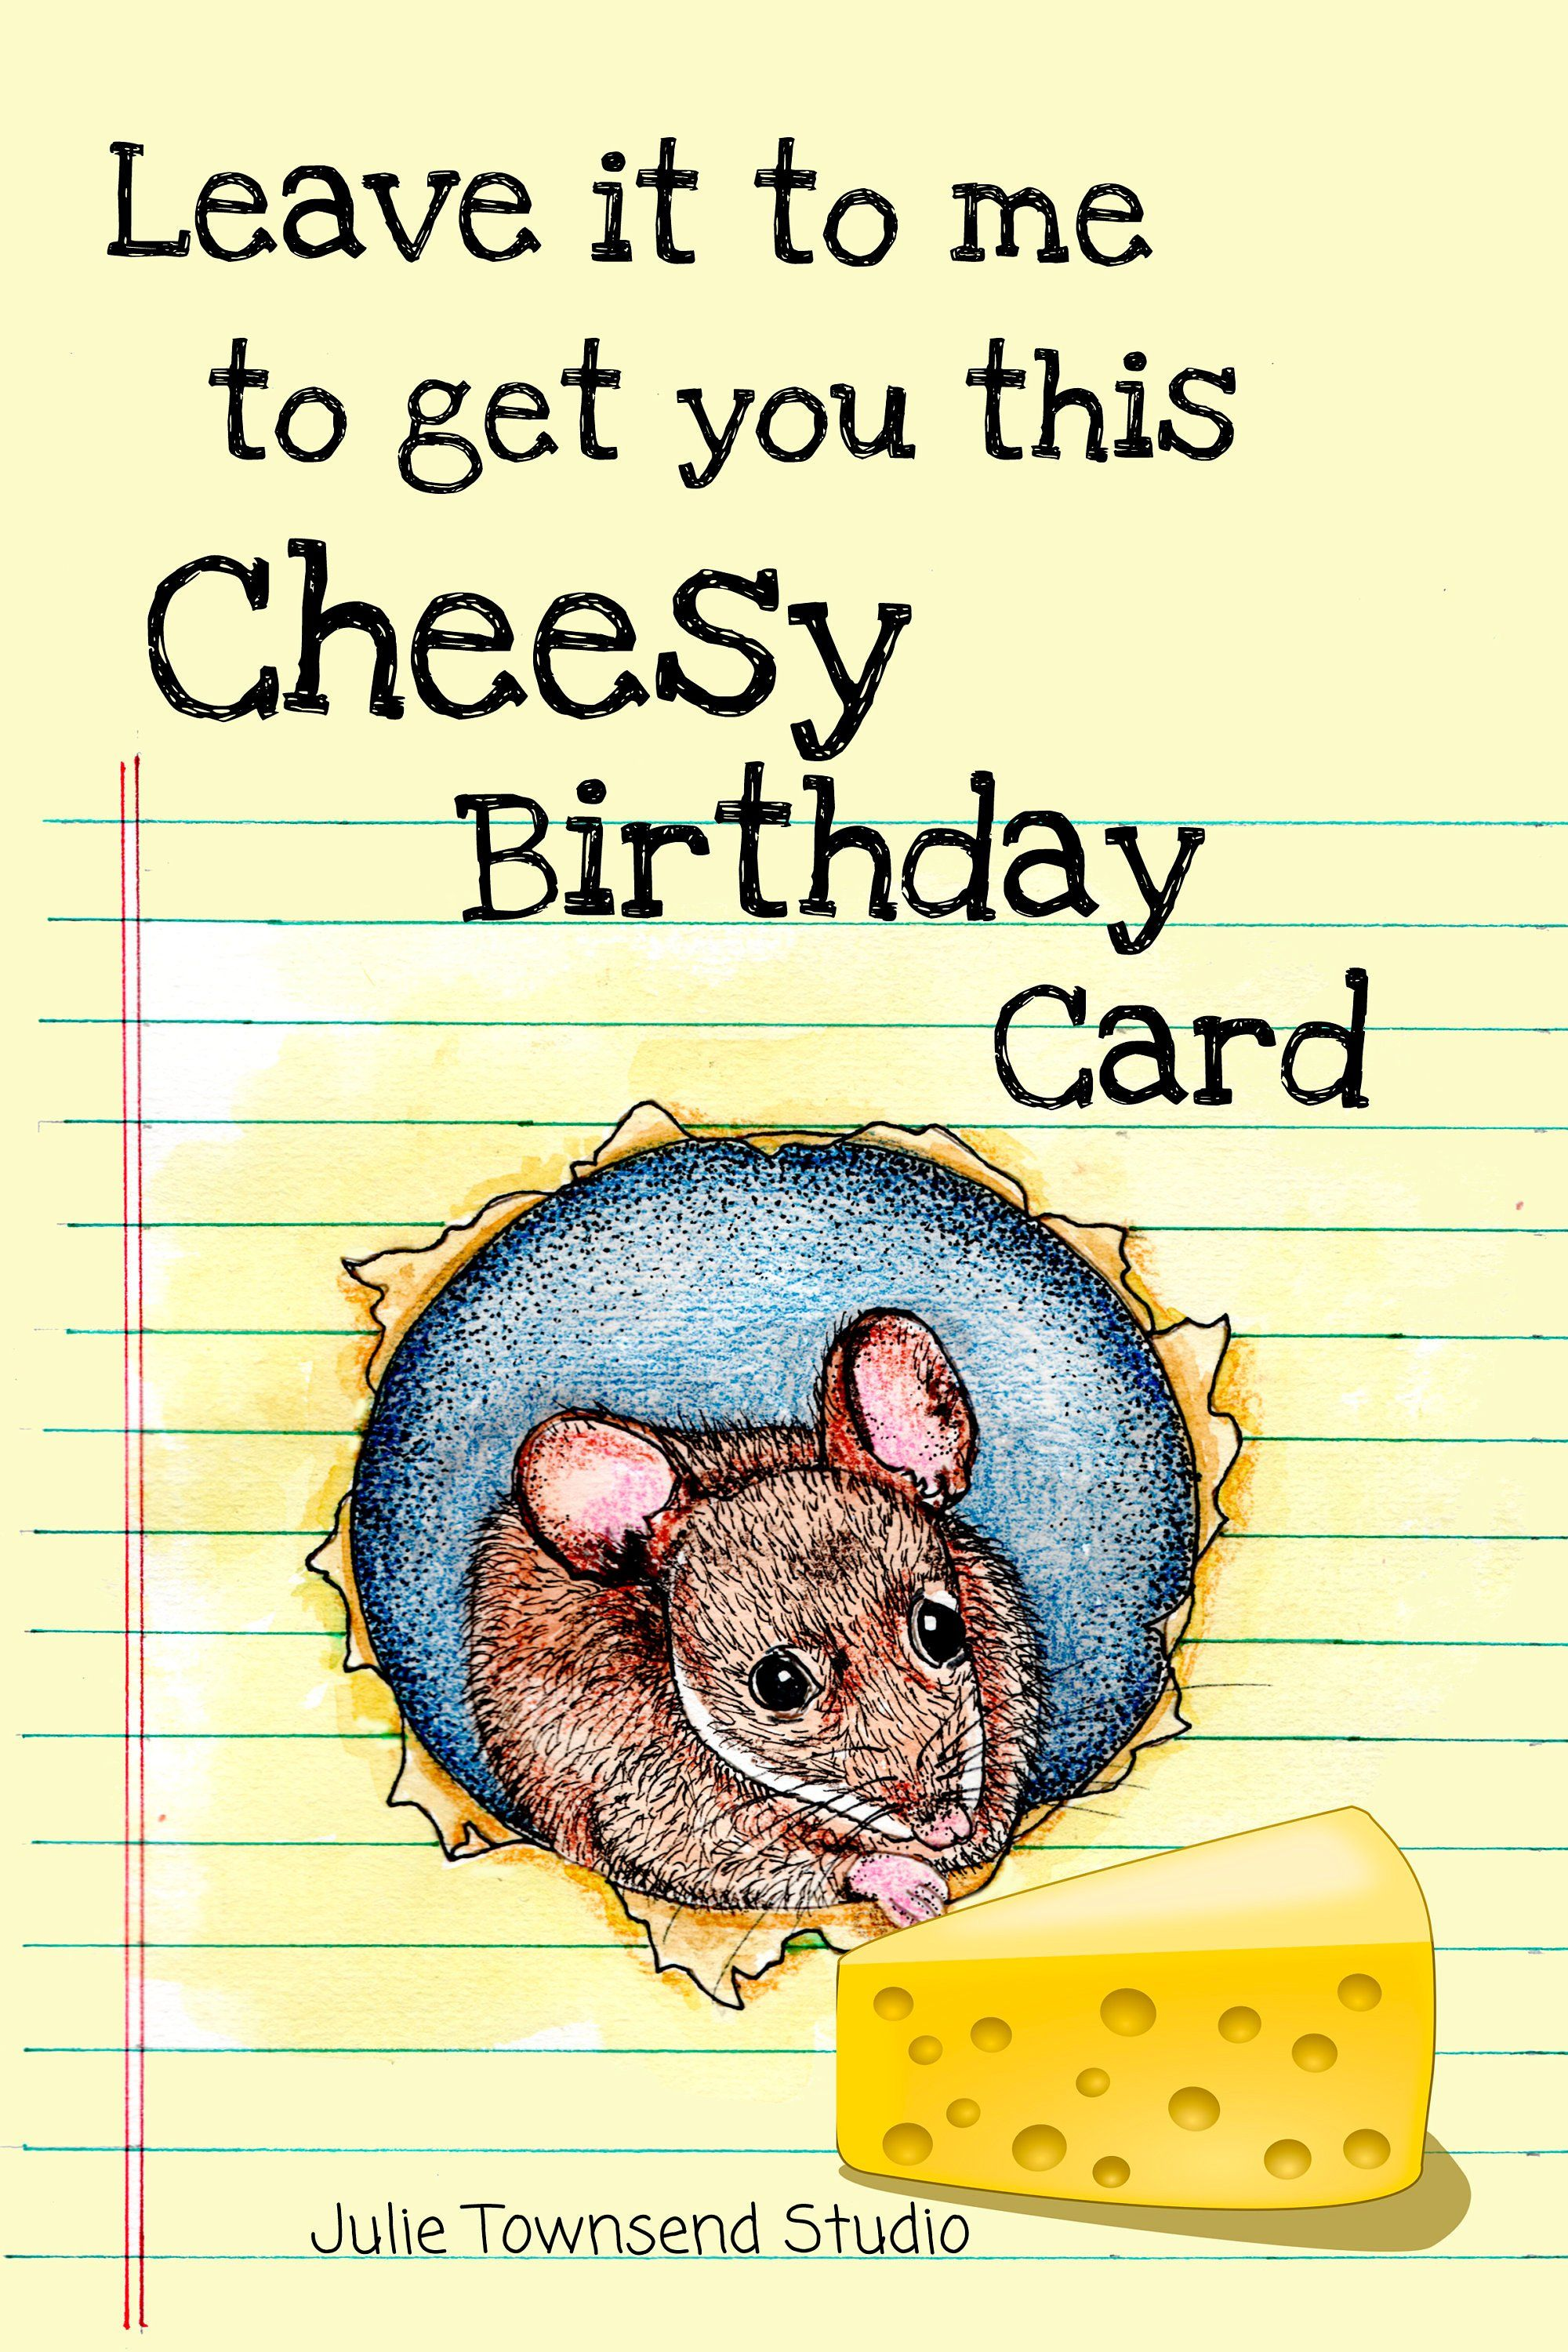 Sending happiness greeting card with little mouse illustration downloadable